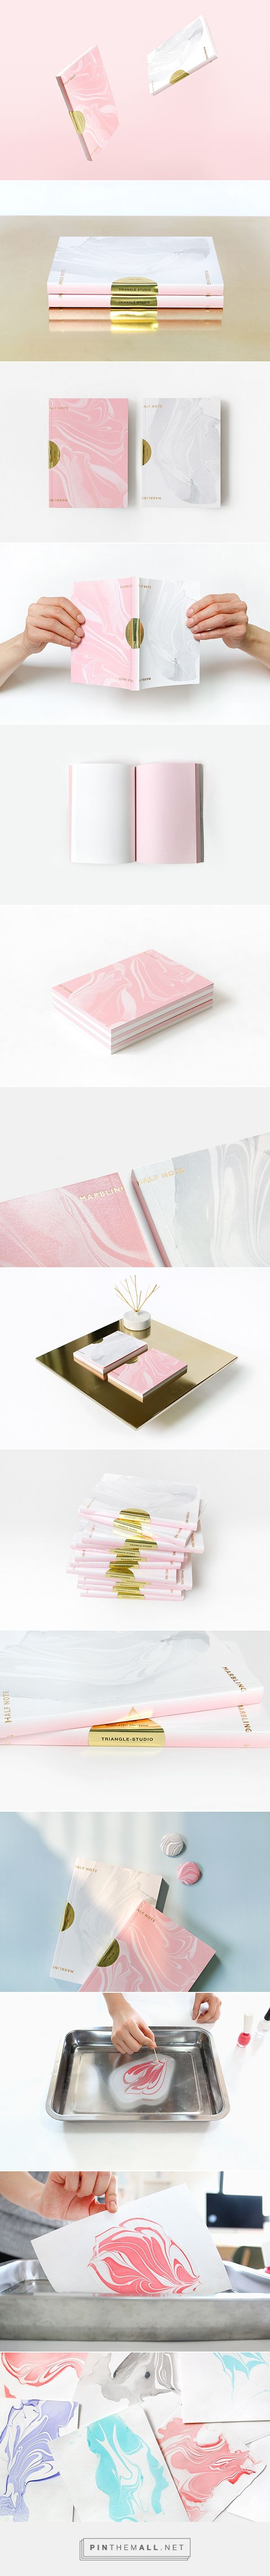 Two sided #booklet and #brochure design with marbled cover and gold foil